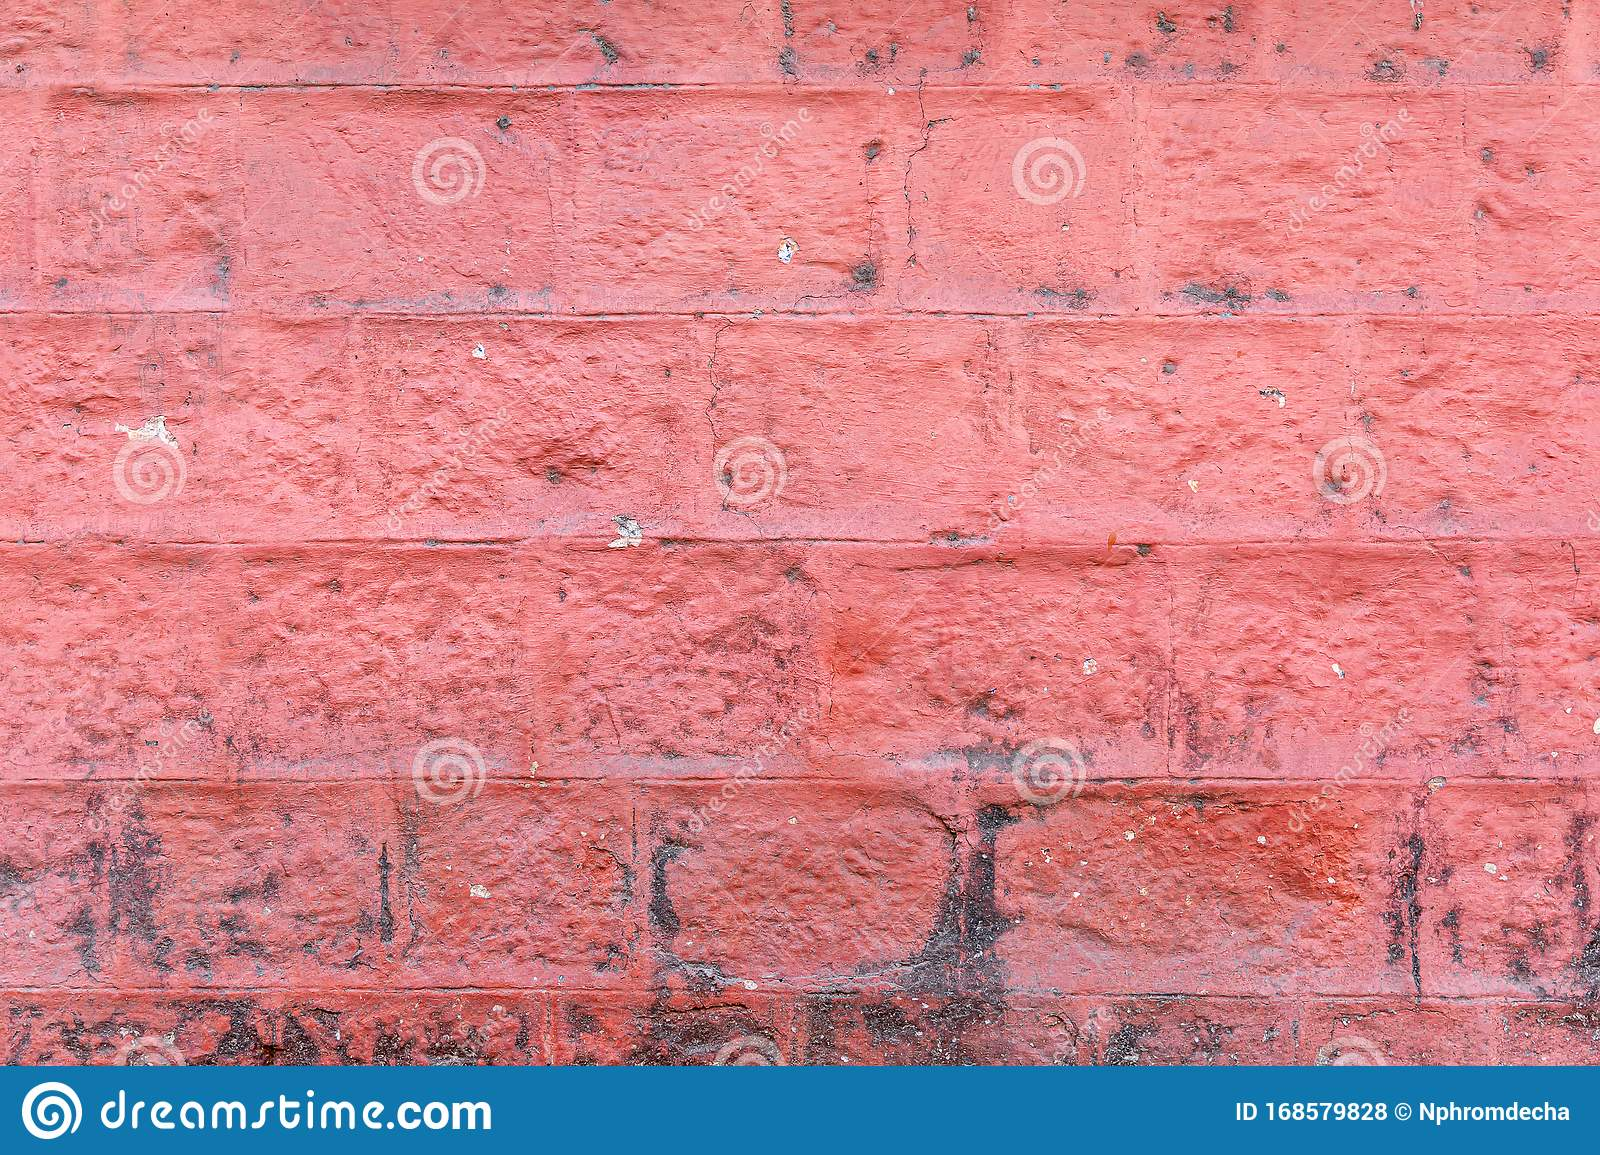 Concrete Block Wall Painted Red Color Of Background And Texture Stock Photo Image Of Concrete Brown 168579828